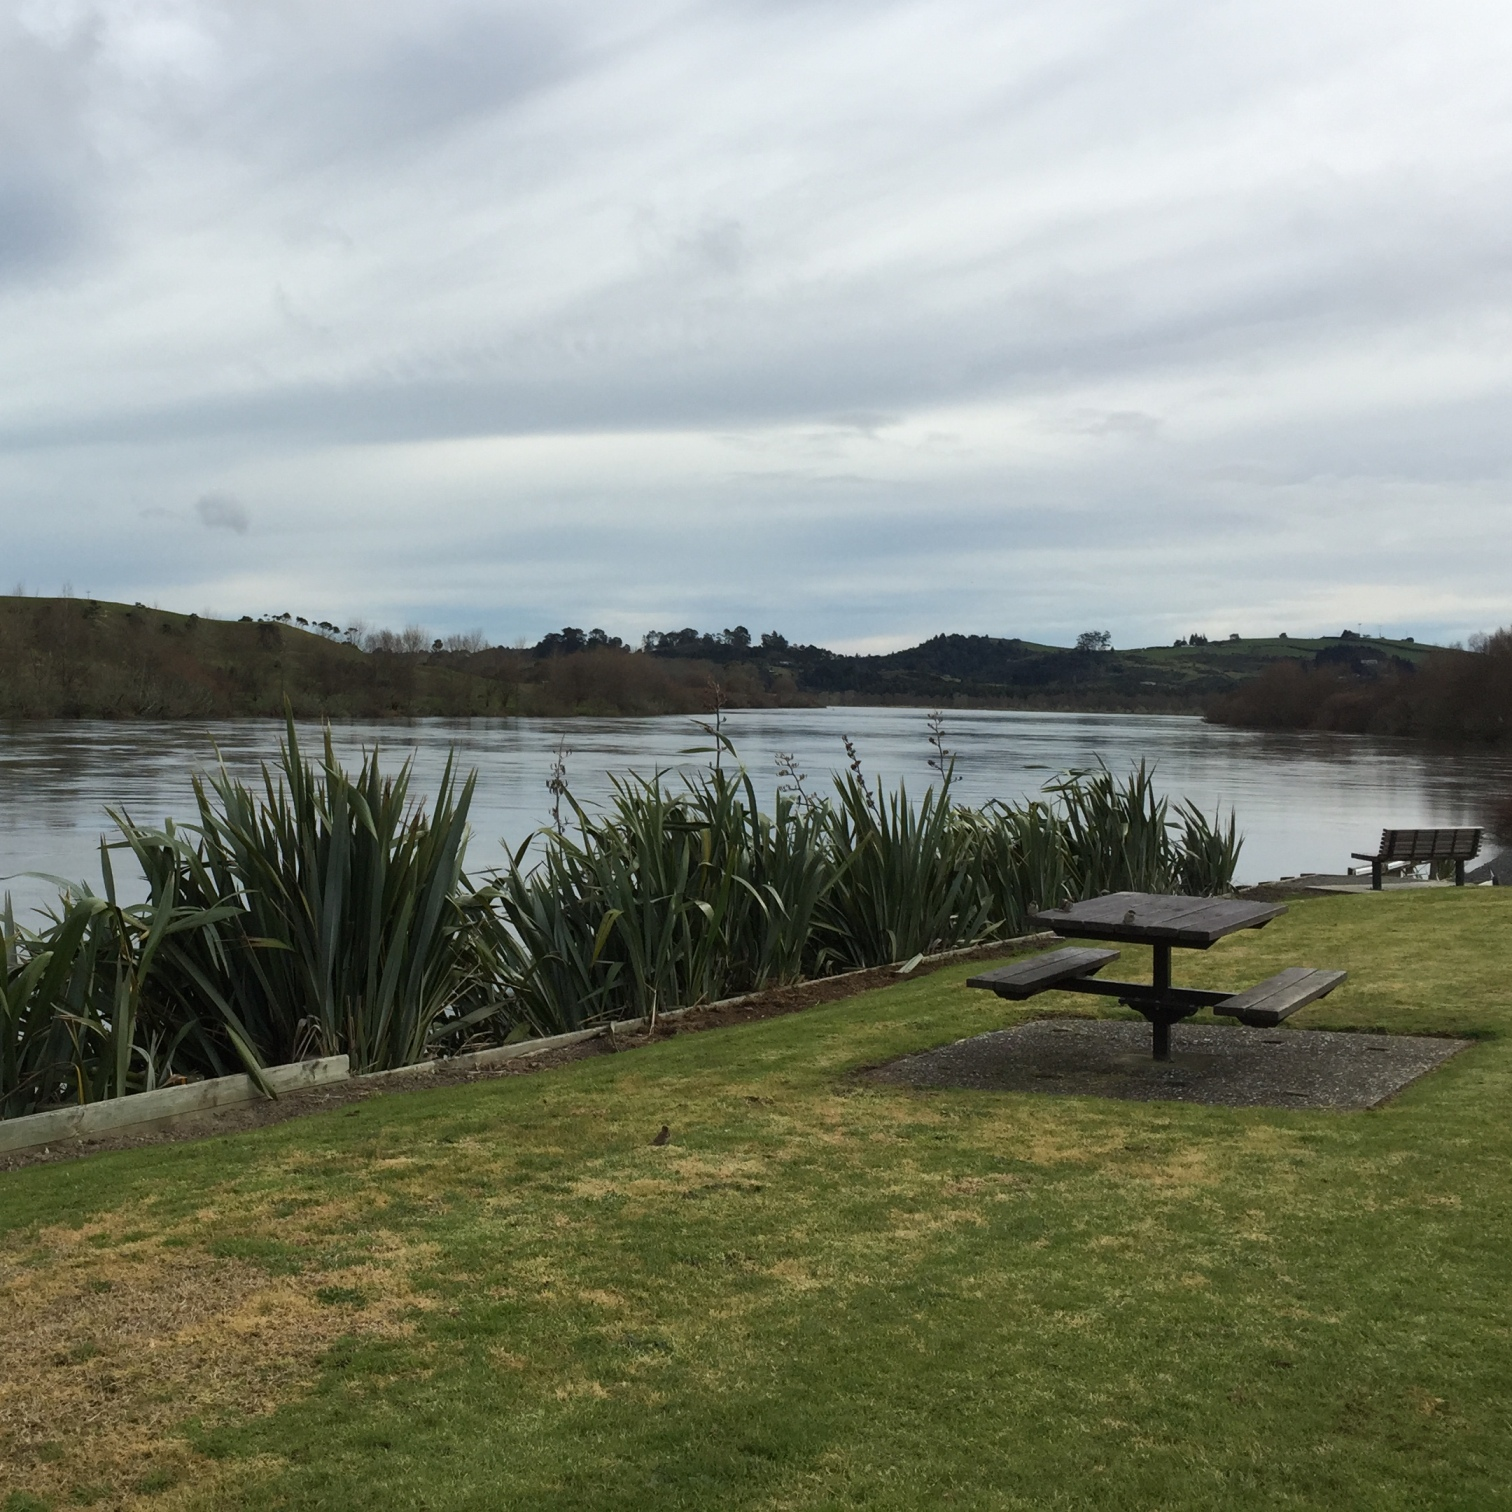 Picnic next to the Waikato River